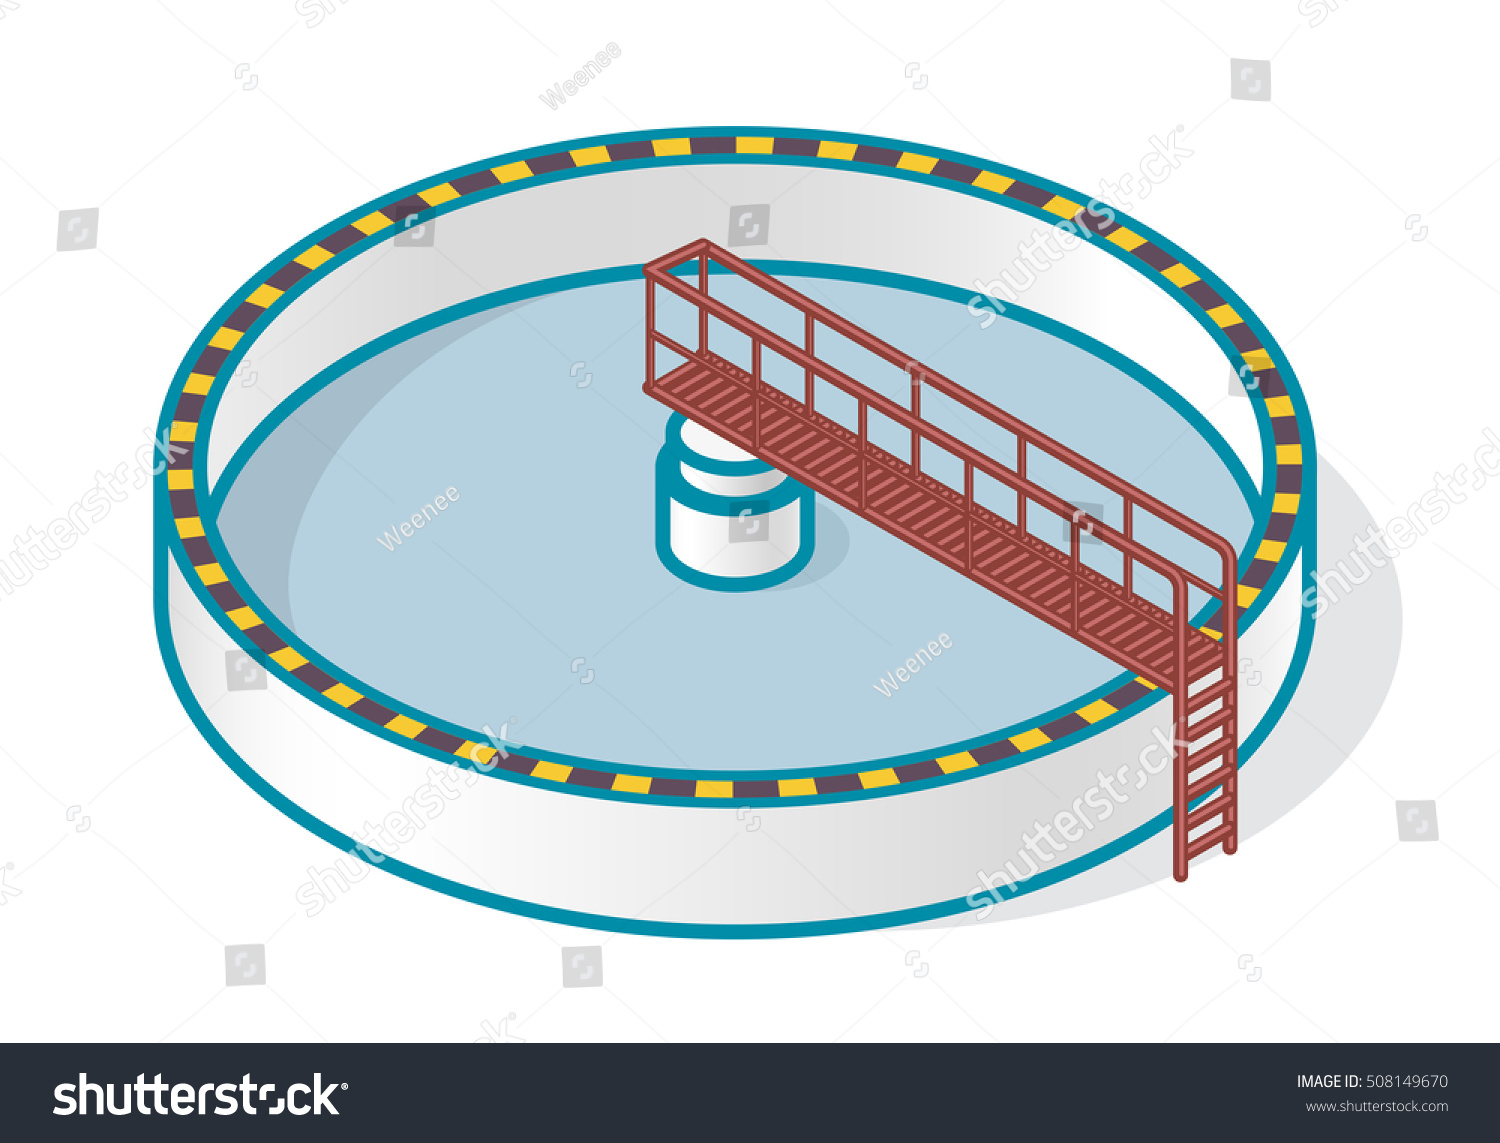 Waste Water Treatment Plant Stylized Outline Stock Vector 508149670 Shutterstock